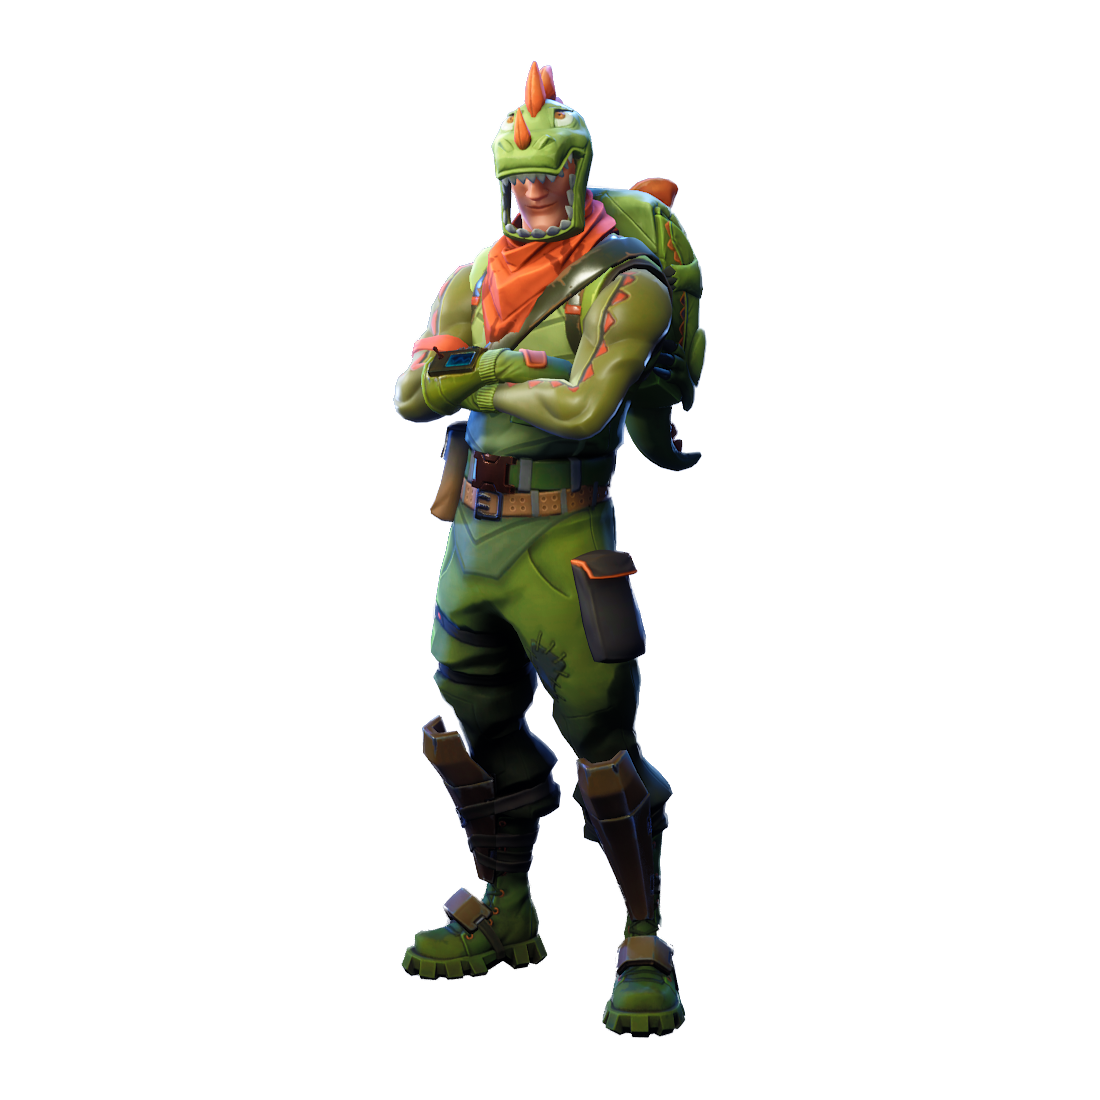 Fortnite rex minecraft skin - Rex from fortnite ...